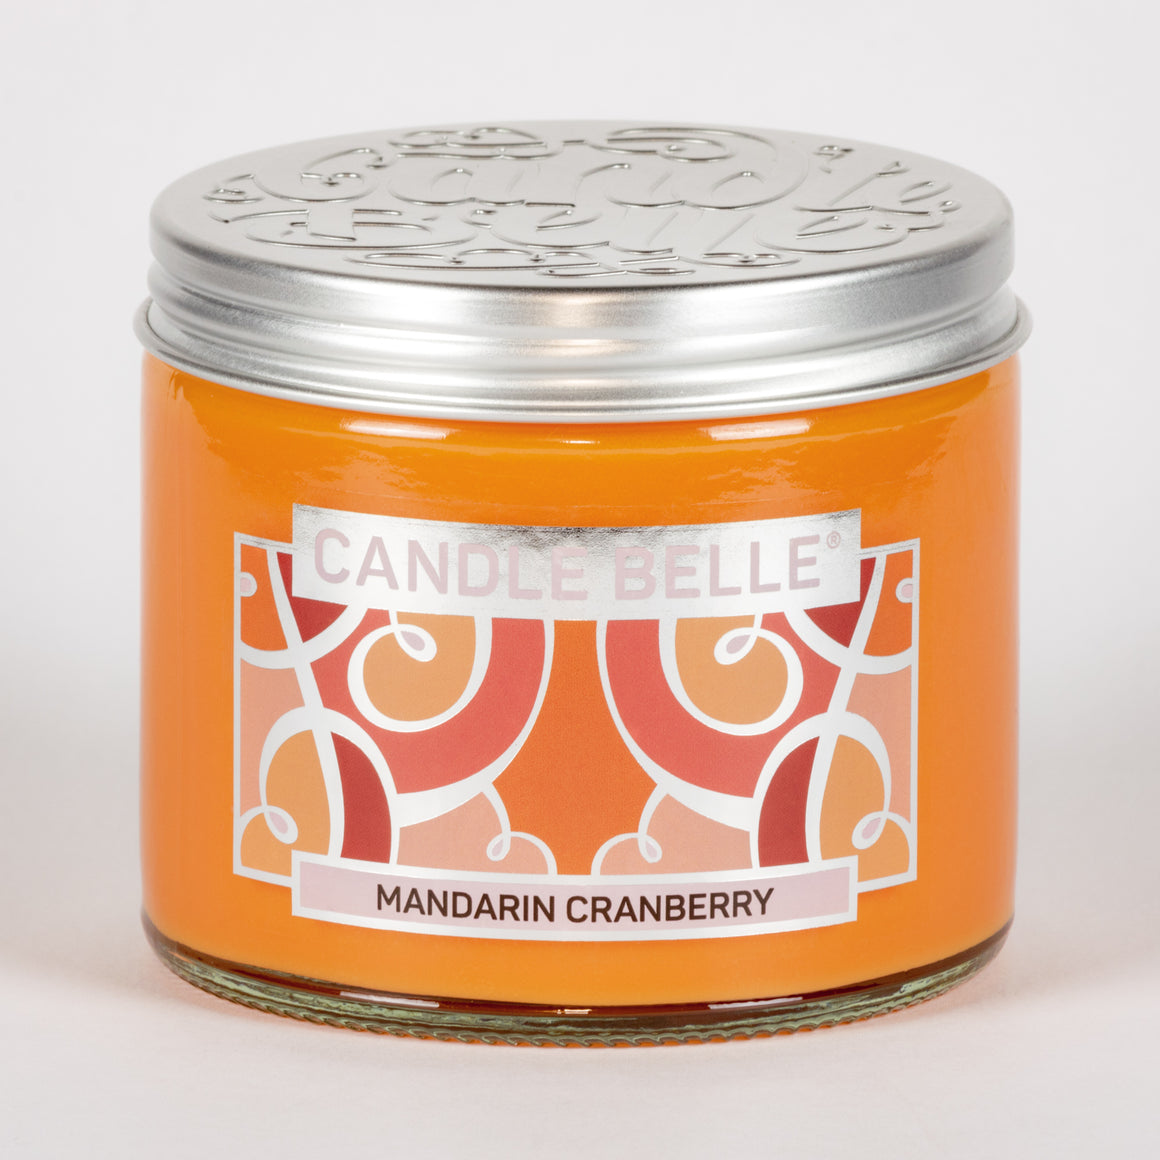 Candle Belle® Mandarin Cranberry Fragranced Twin Wick Jar Candle 240g (3 Pack)